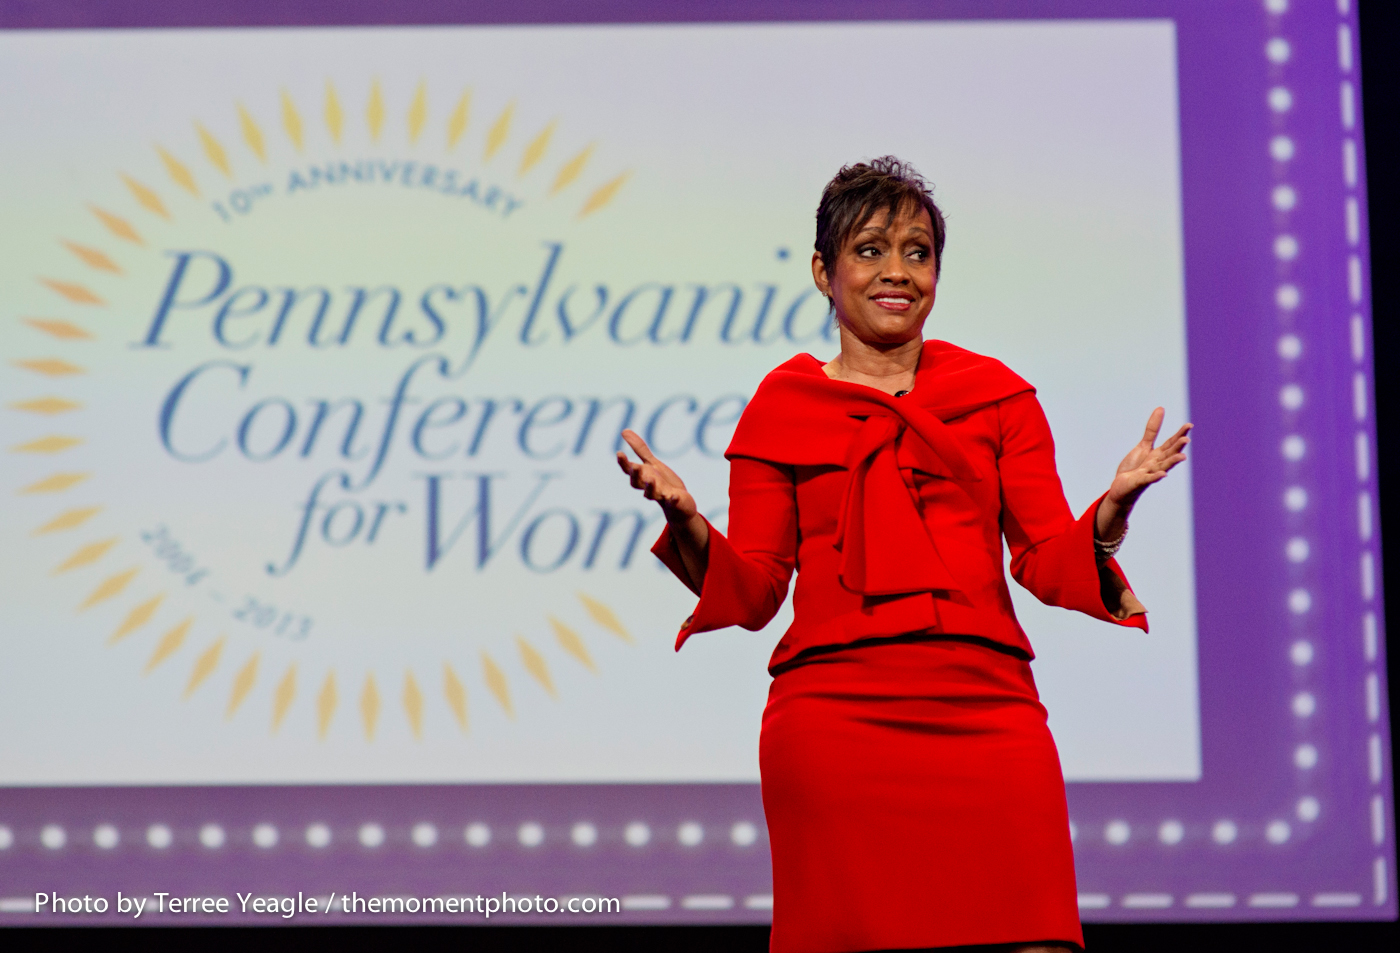 Judge Hatchett went on to ask three life-altering questions to the    Judge Hatchett 2013